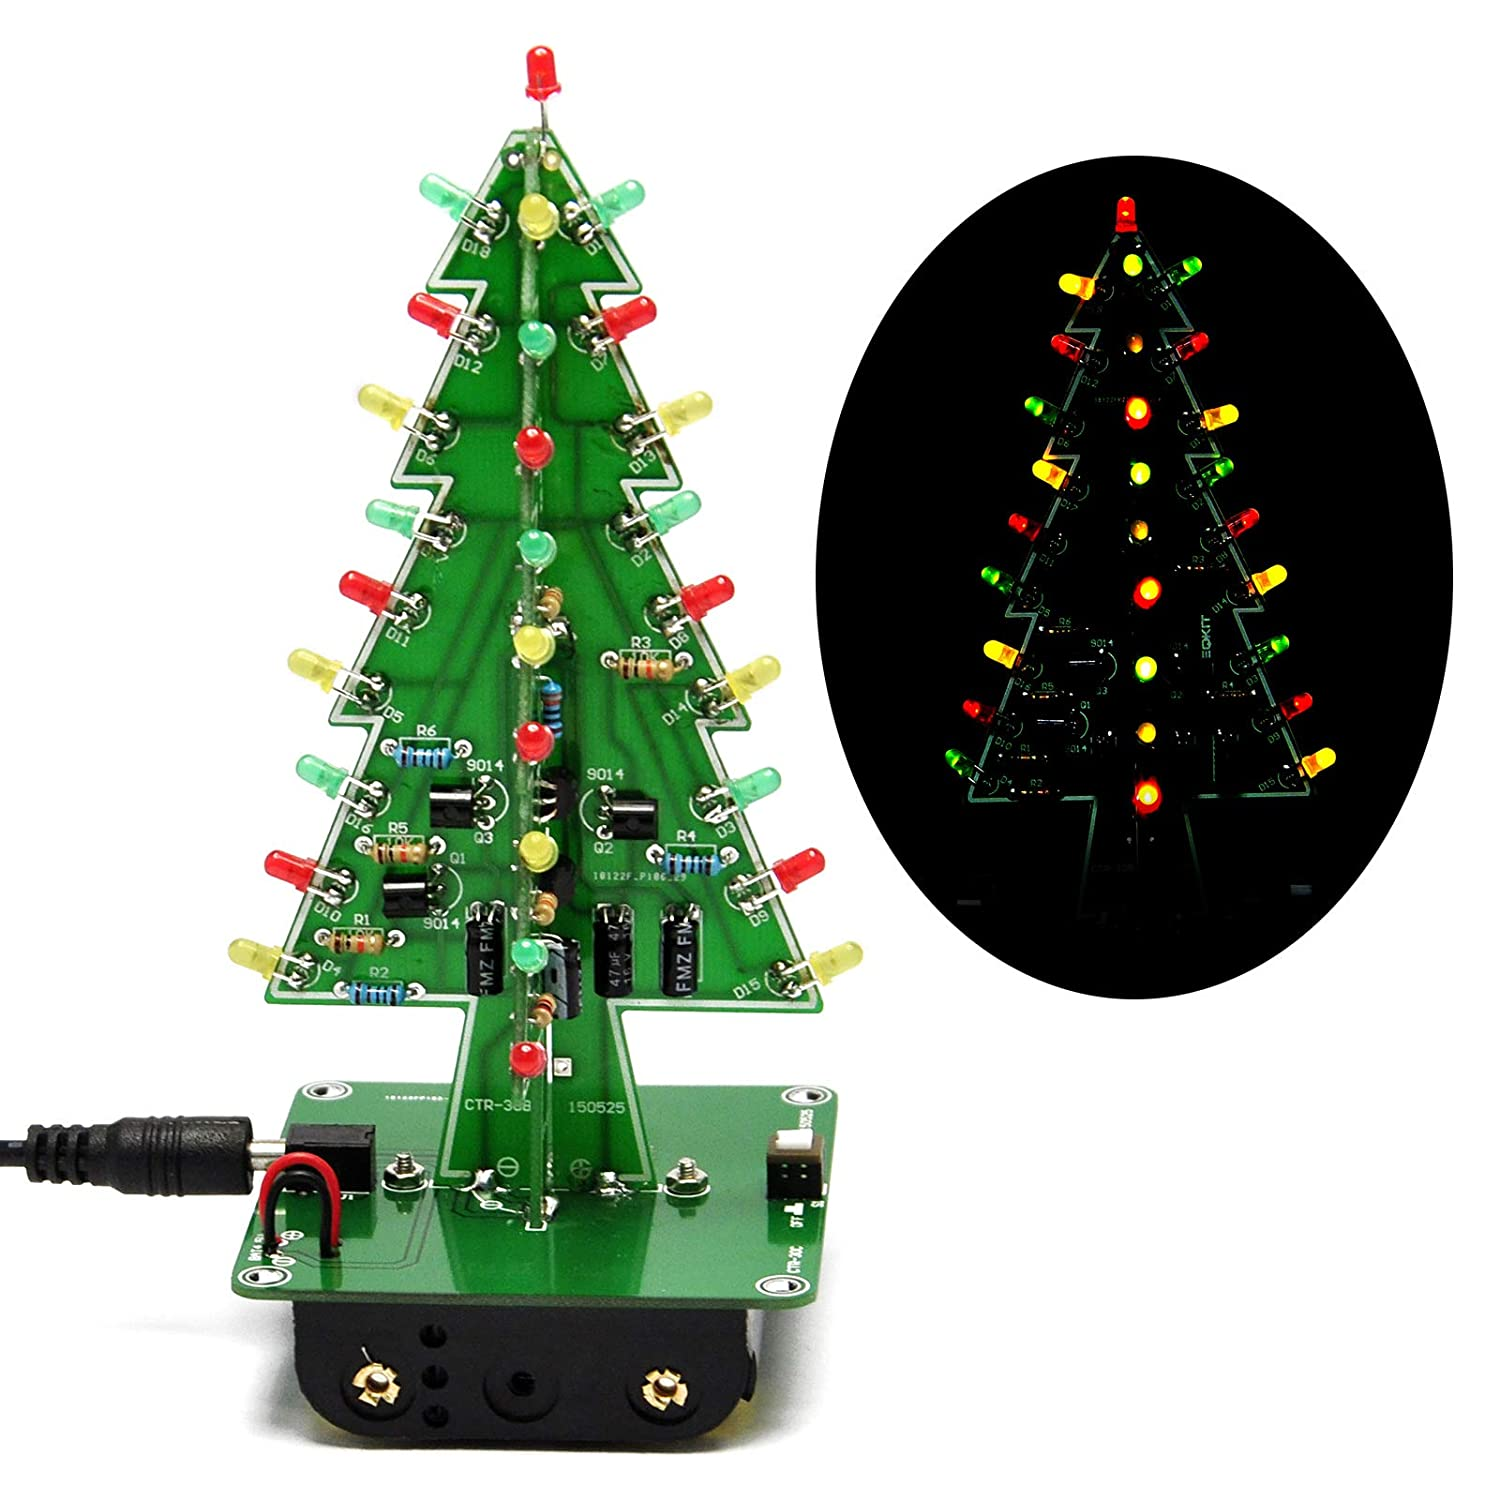 Wiring Diagrams Also 3 Wire Led Christmas Light Wiring Diagram